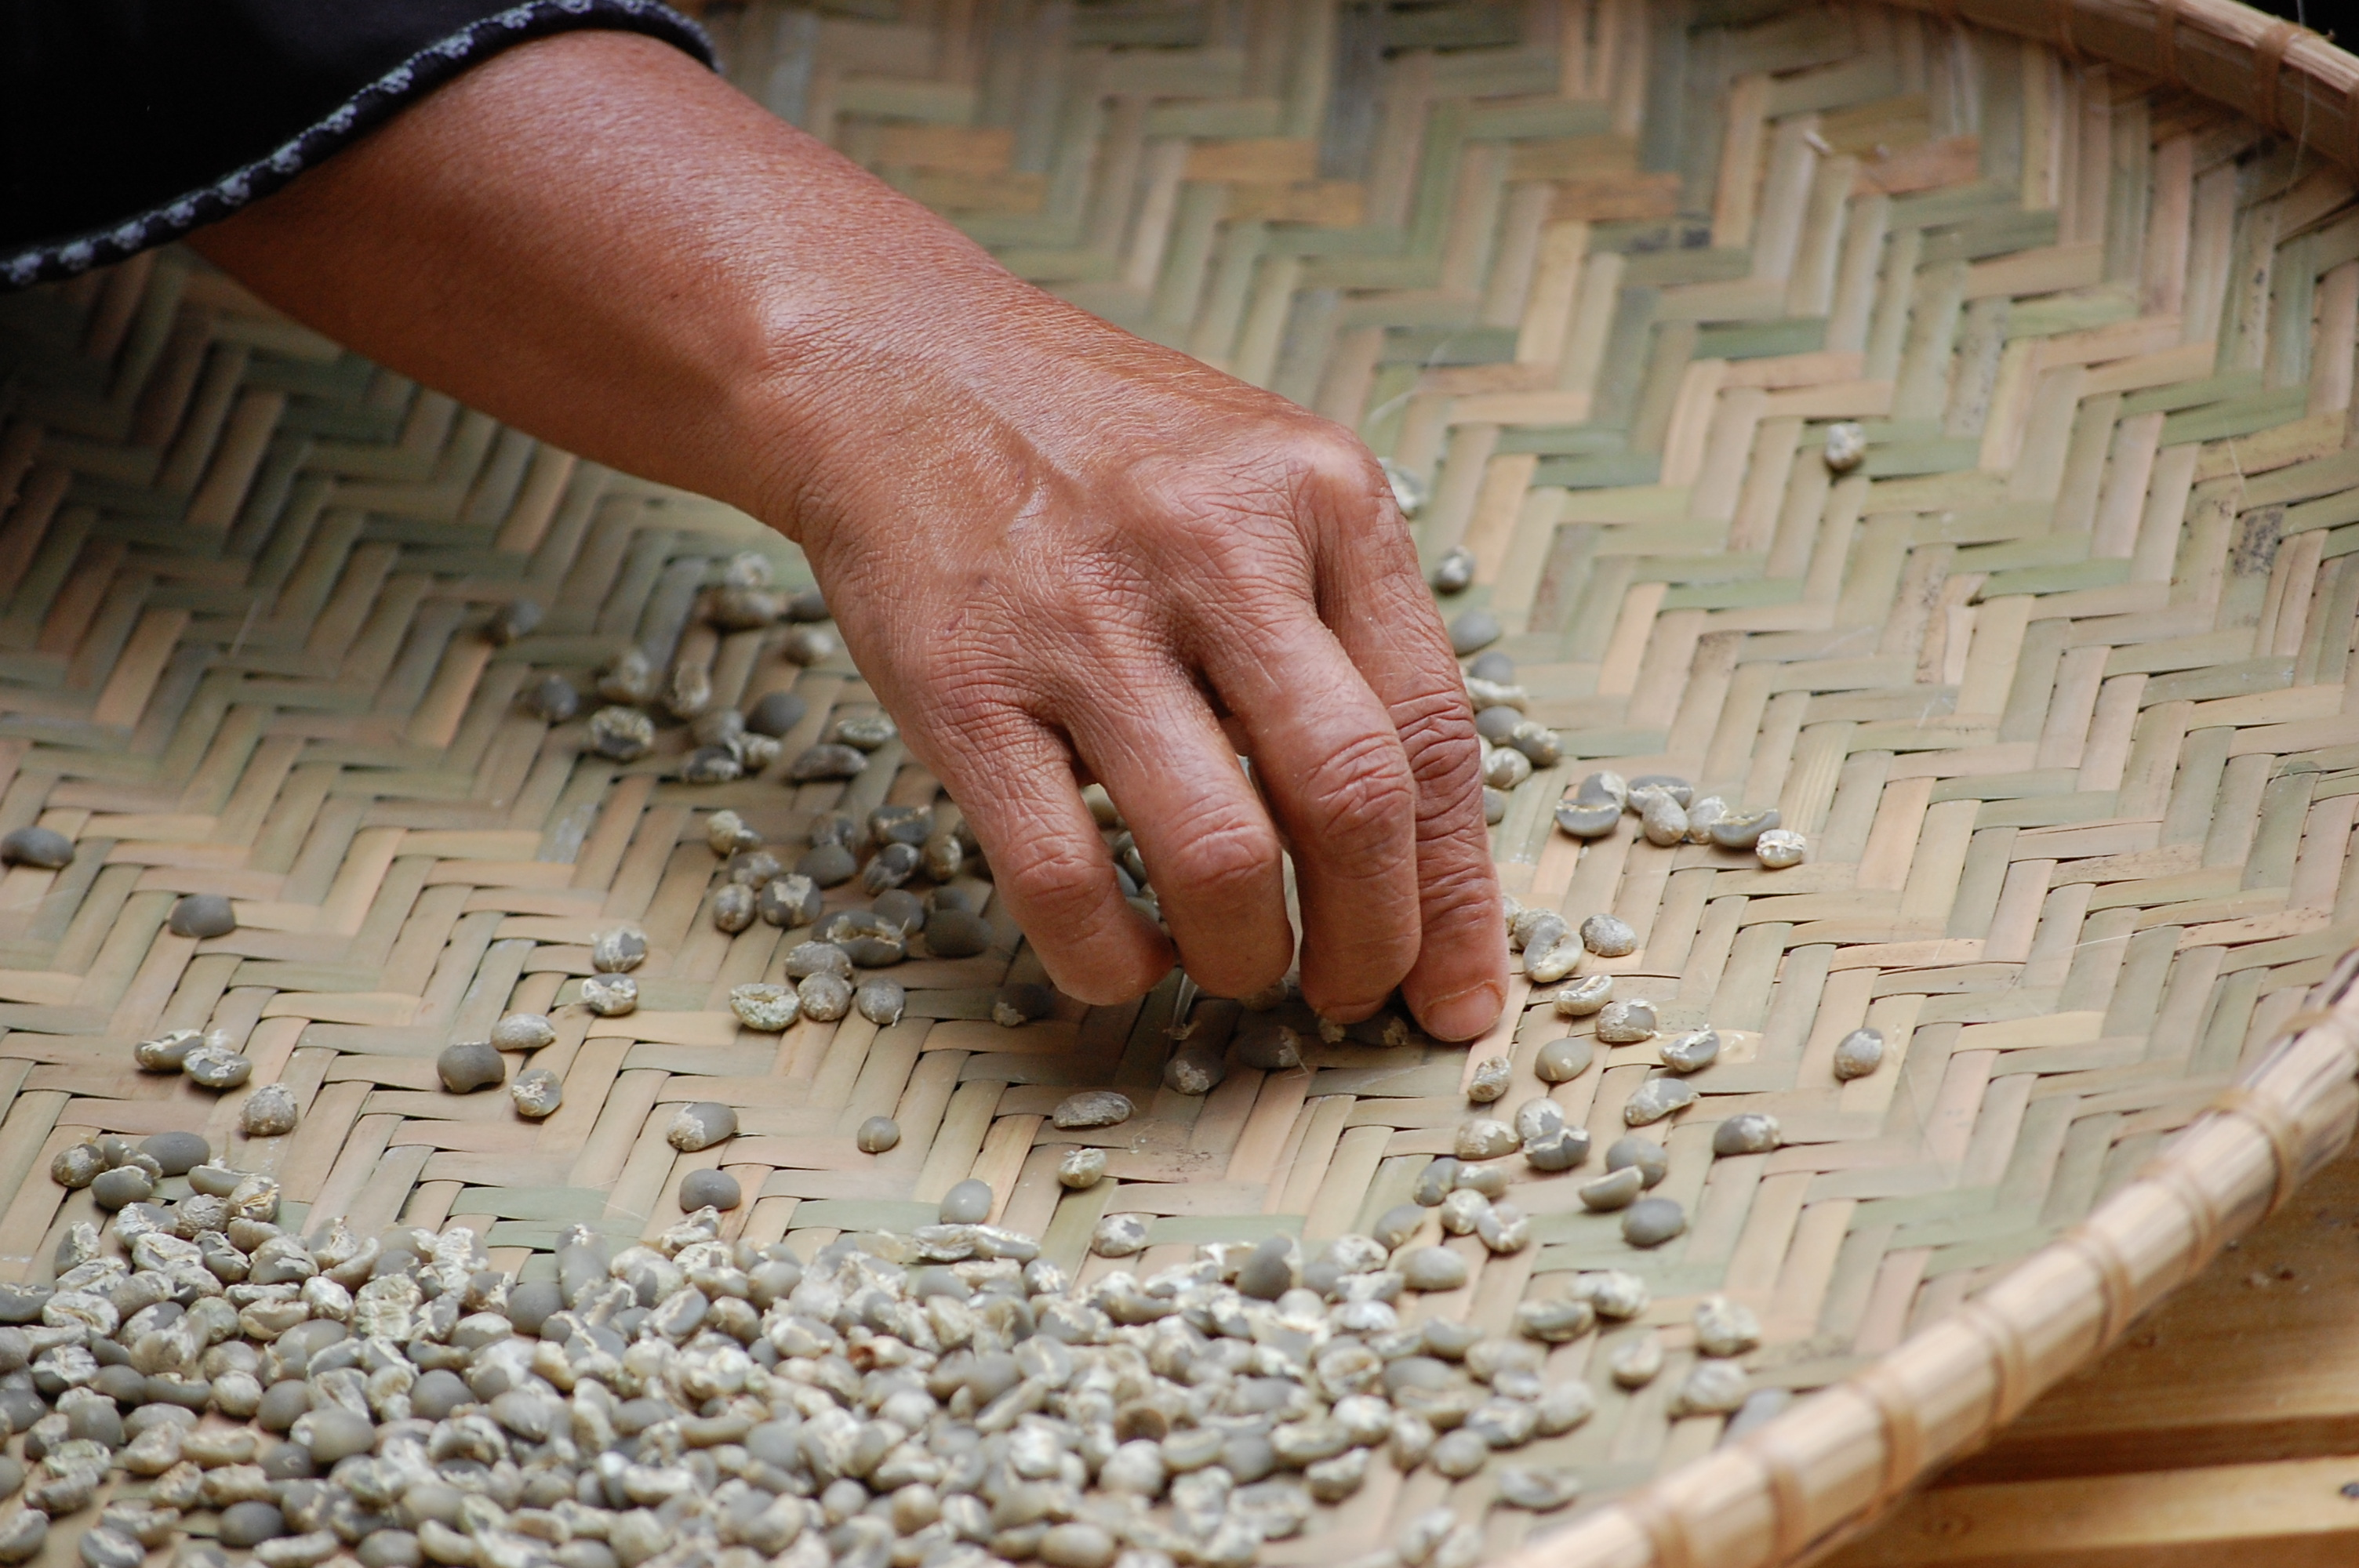 Hand sorting - Image courtesy of Matthew Ross